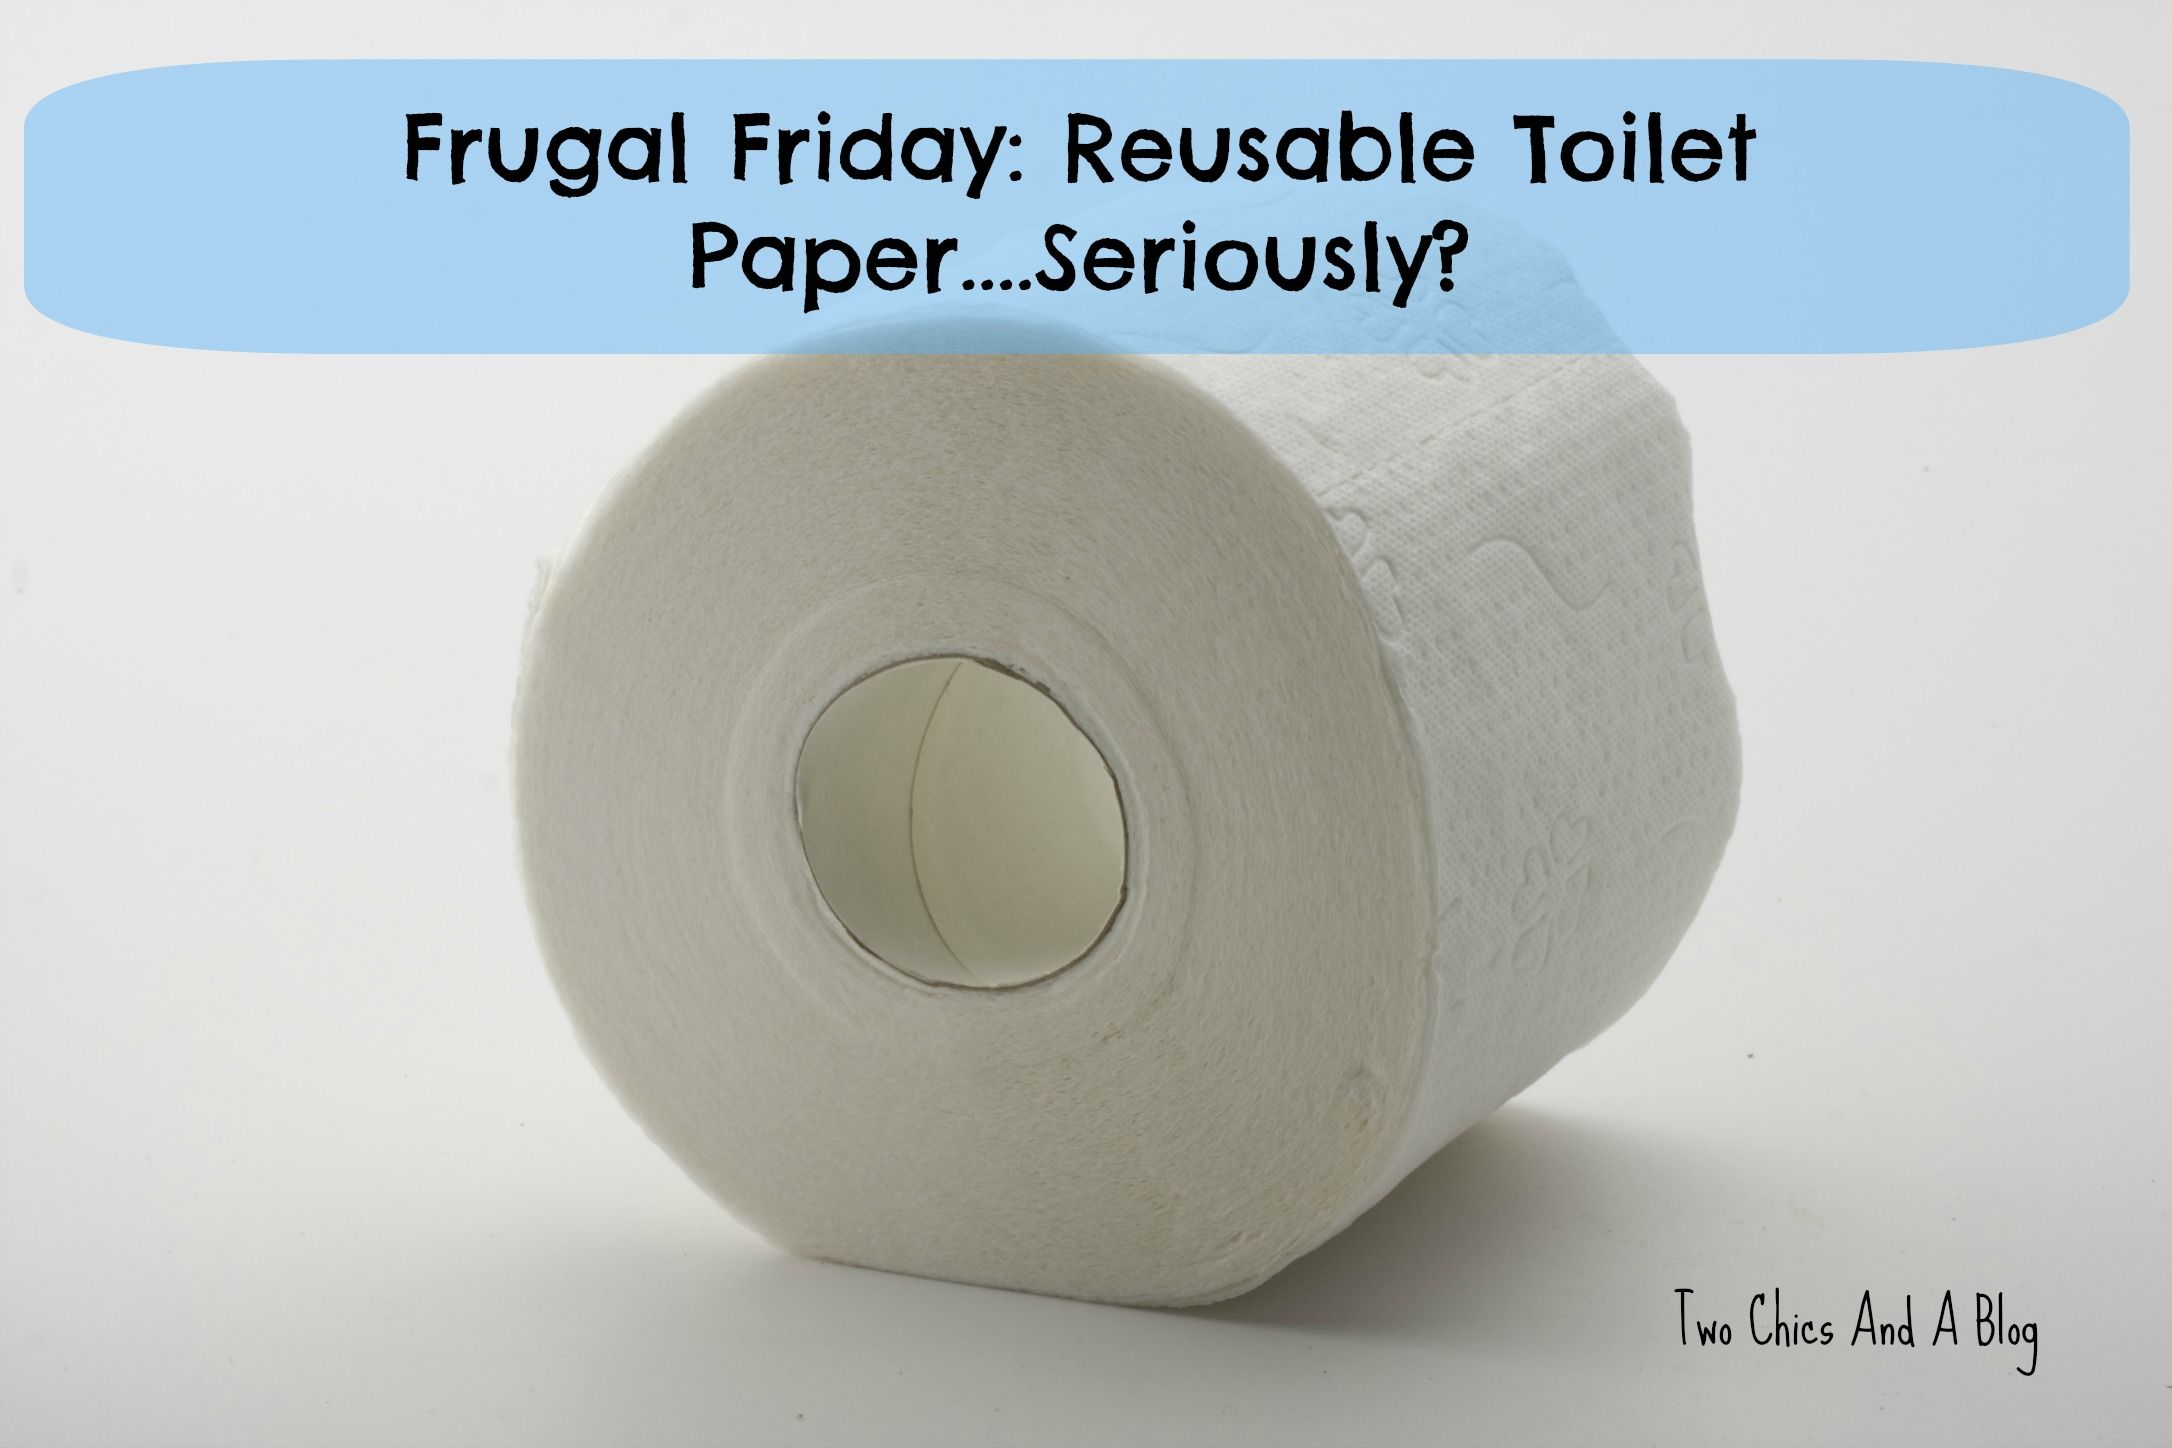 Reusable toilet paper. It sounds gross, I know, but with some ...